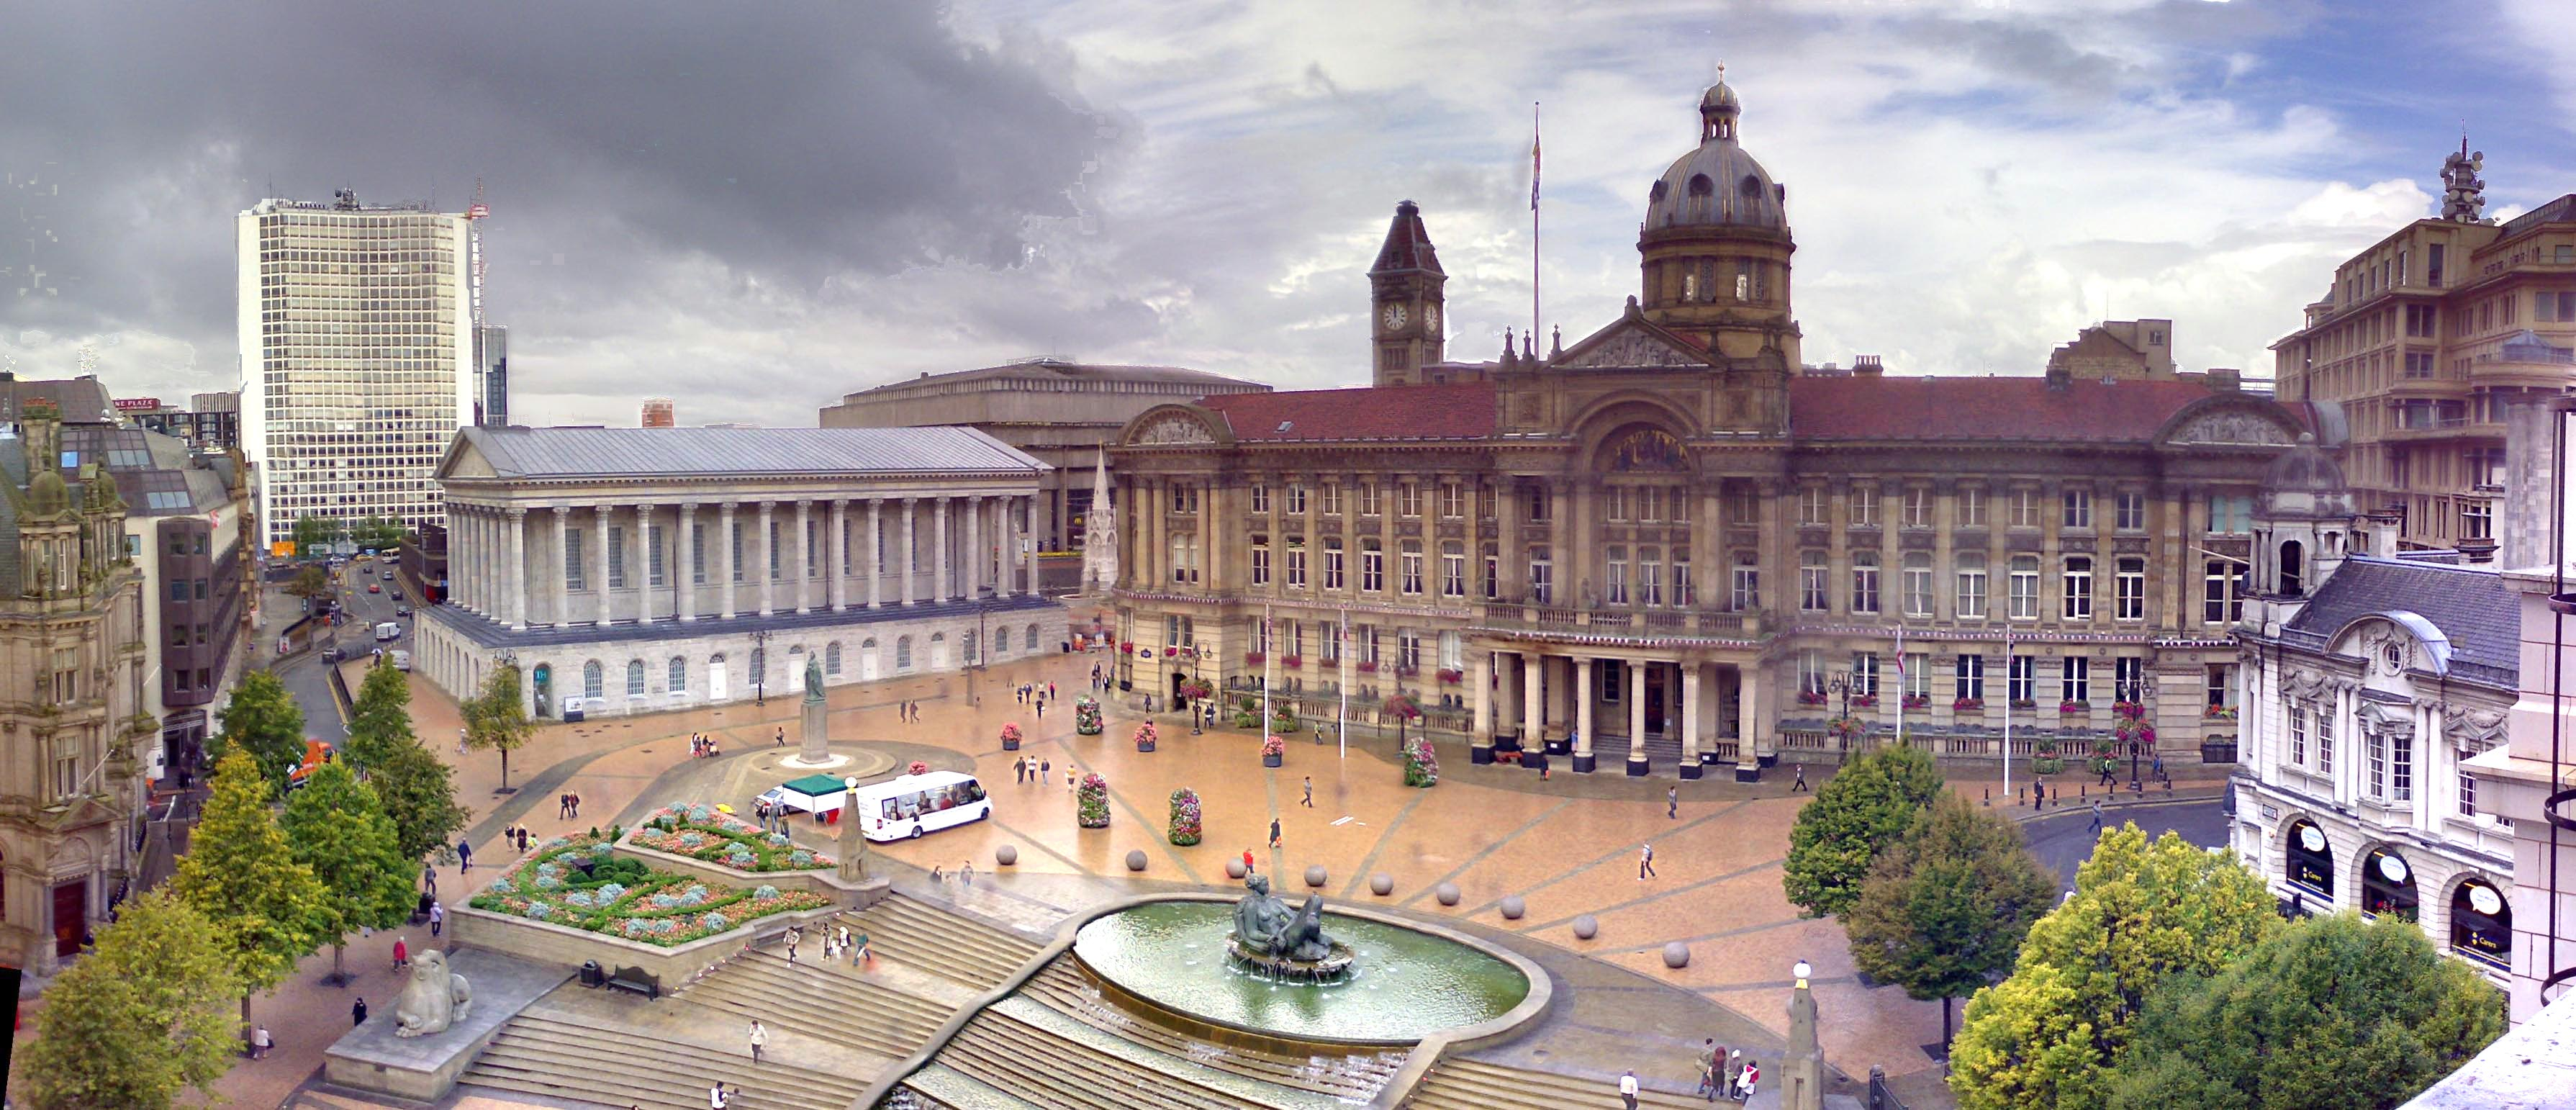 Birmingham introduces city-wide HMO restrictions - https://roomslocal.co.uk/blog/birmingham-introduces-city-wide-hmo-restrictions #introduces #city #wide #restrictions